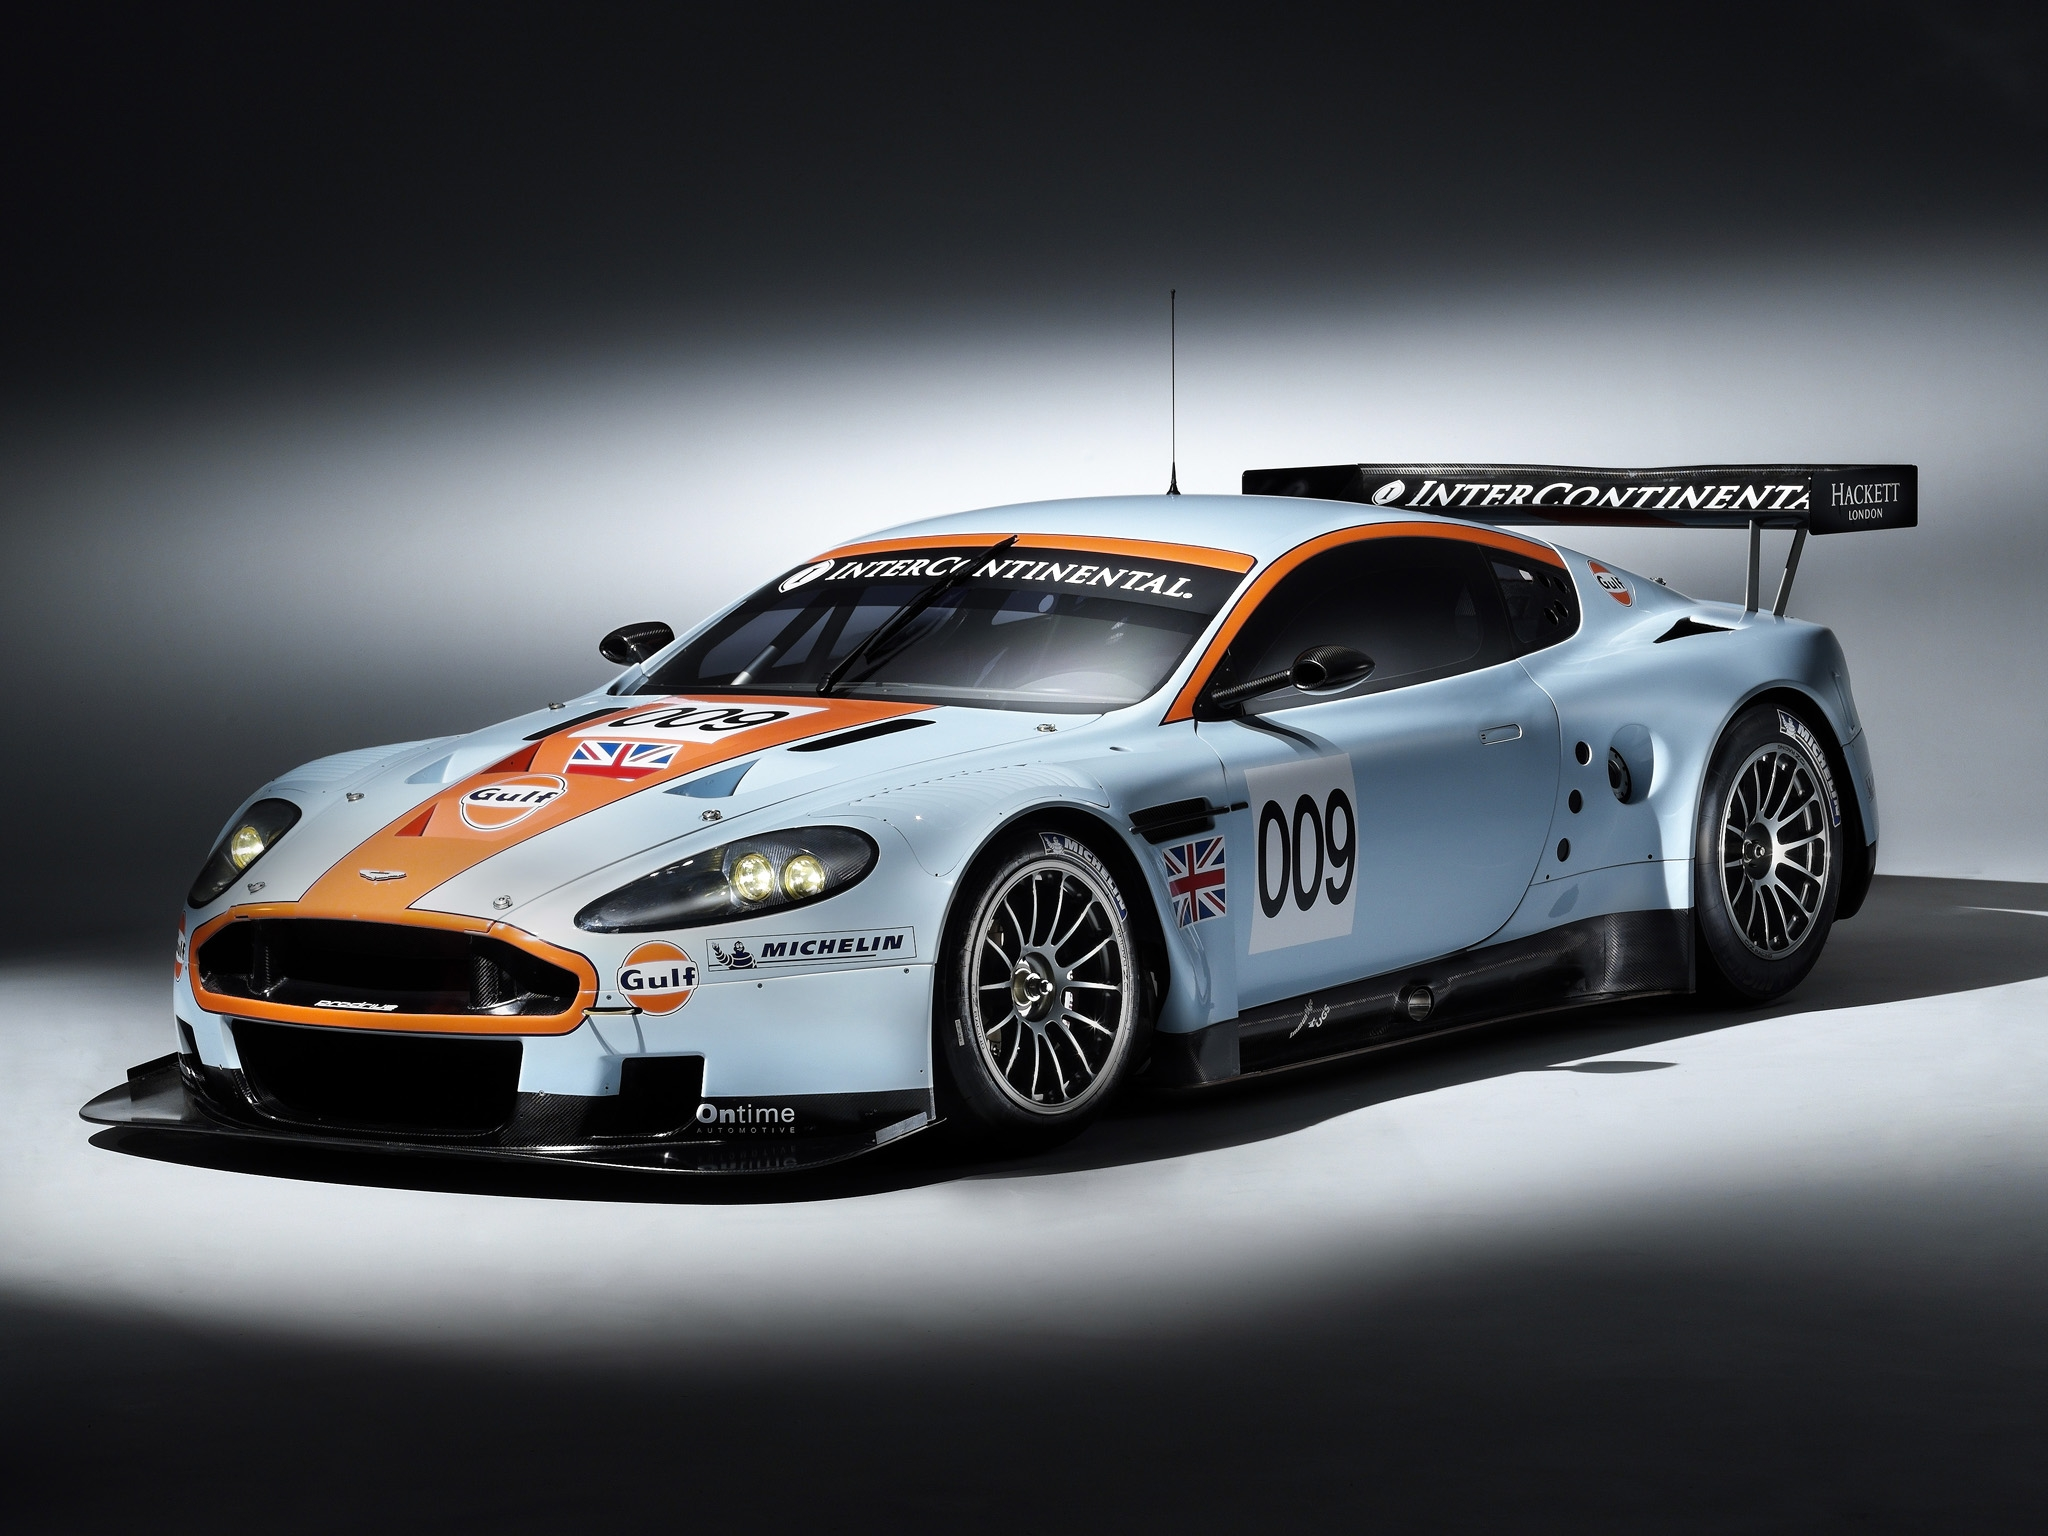 As a result, you can install a beautiful and colorful wallpaper in high quality. Wallpaper Aston Martin Dbr9 2008 White Side View Style Sports Racing Car 2048x1536 Coolwallpapers 1093605 Hd Wallpapers Wallhere